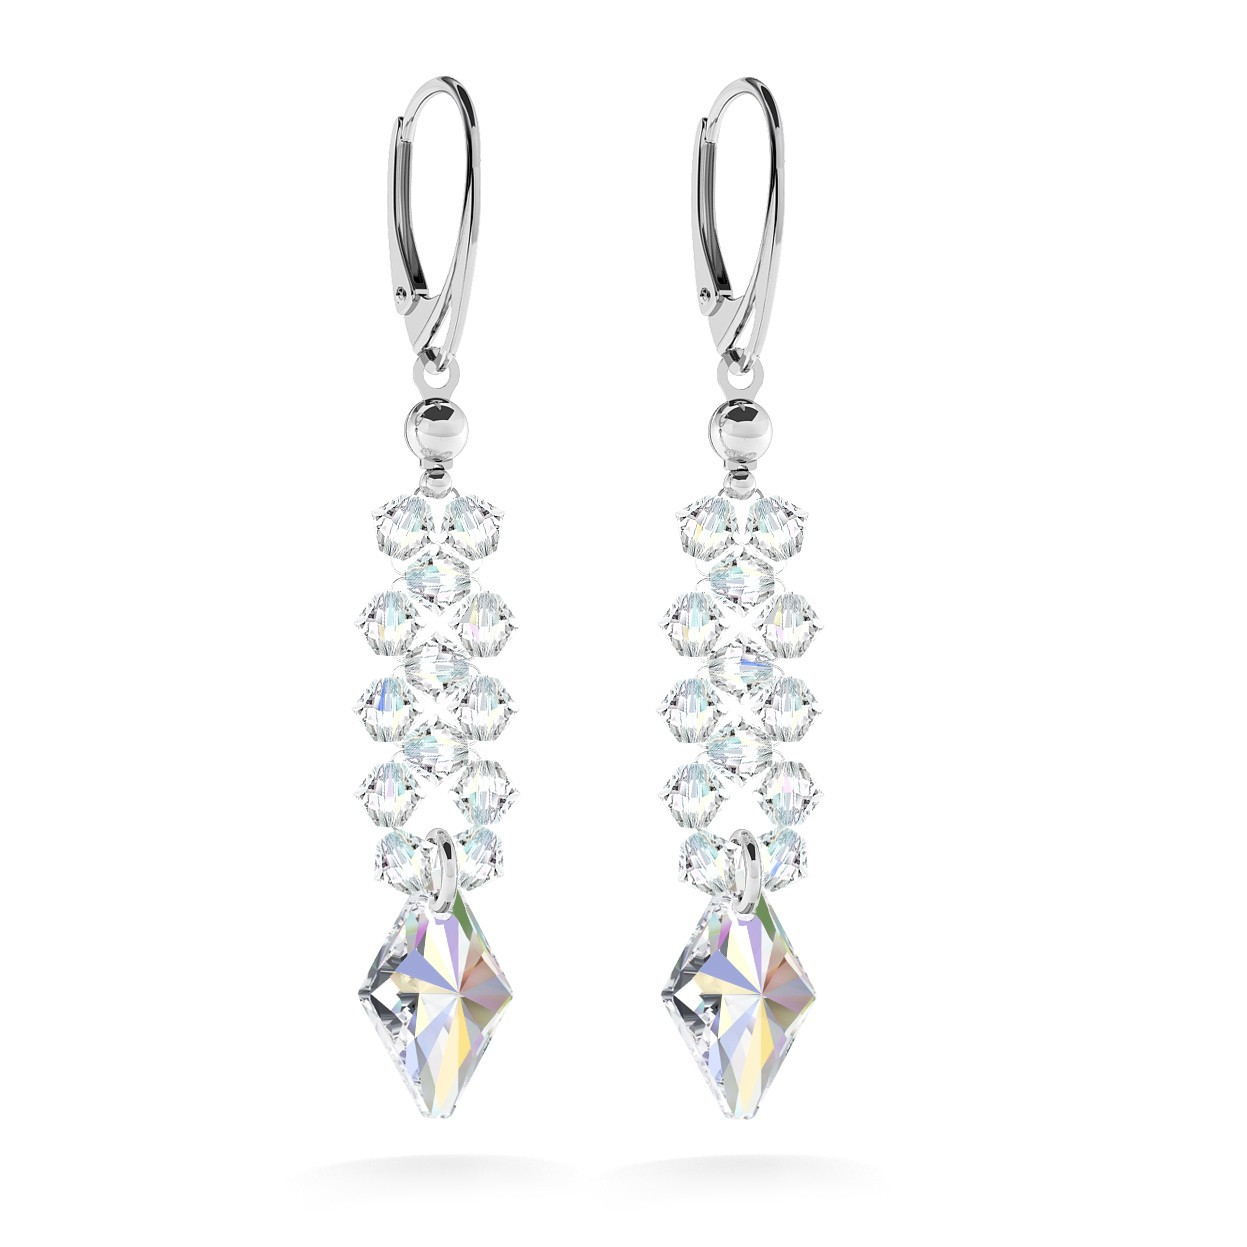 EARRINGS WITH SWAROVSKI CRYSTALS, WEDDING JEWELLERY - MODEL 2